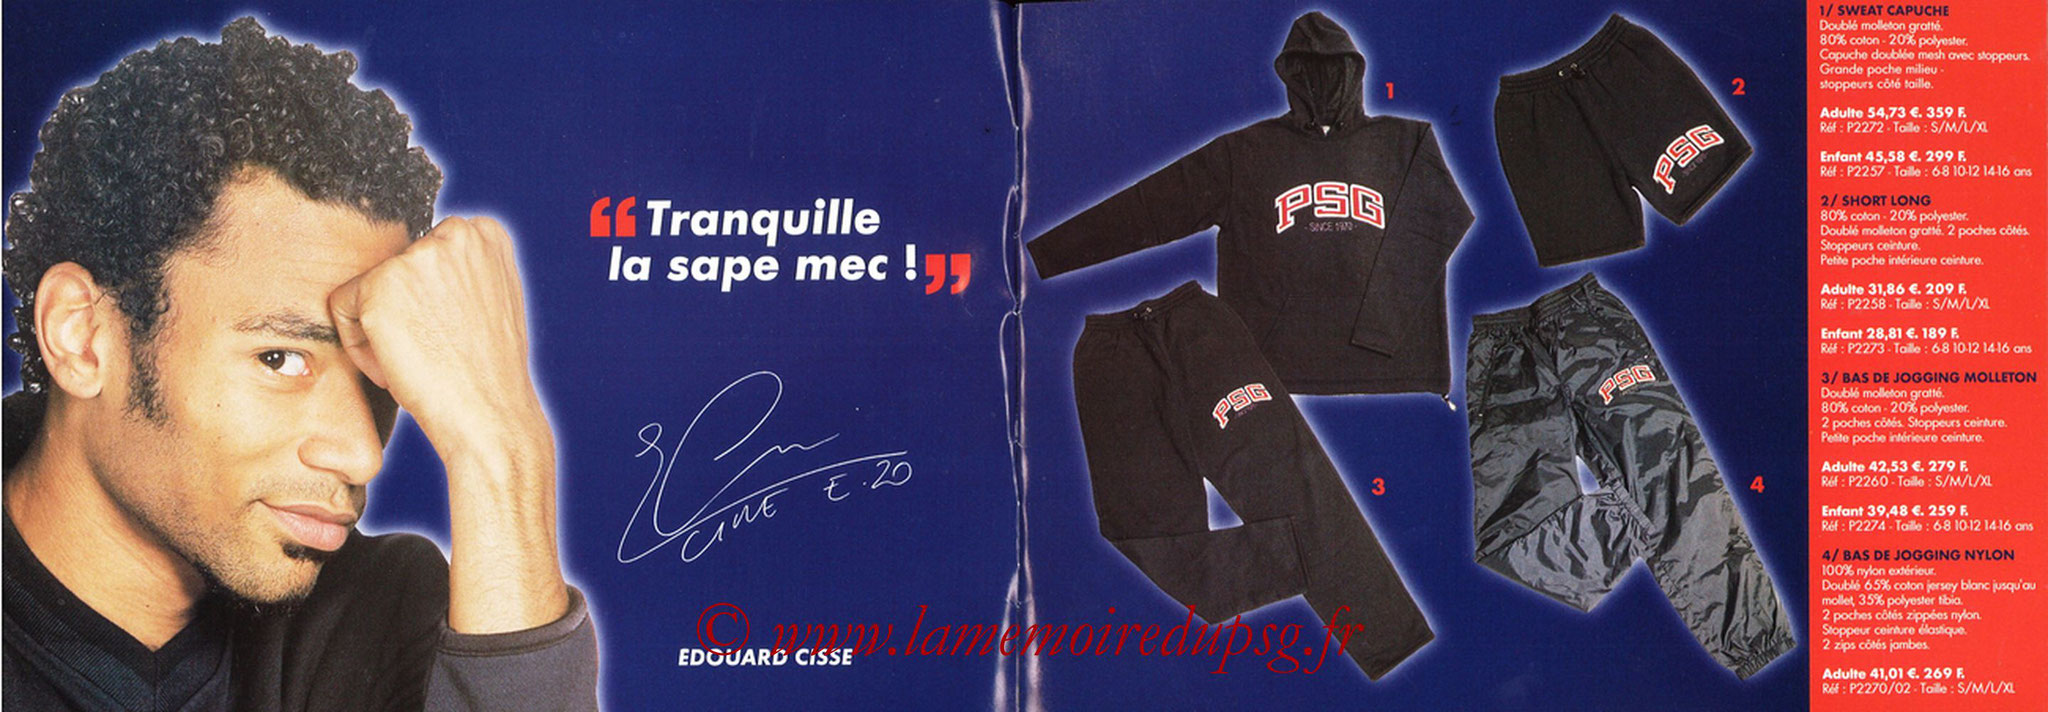 Catalogue PSG - 2001-02 - Noêl - Pages 02 et 03